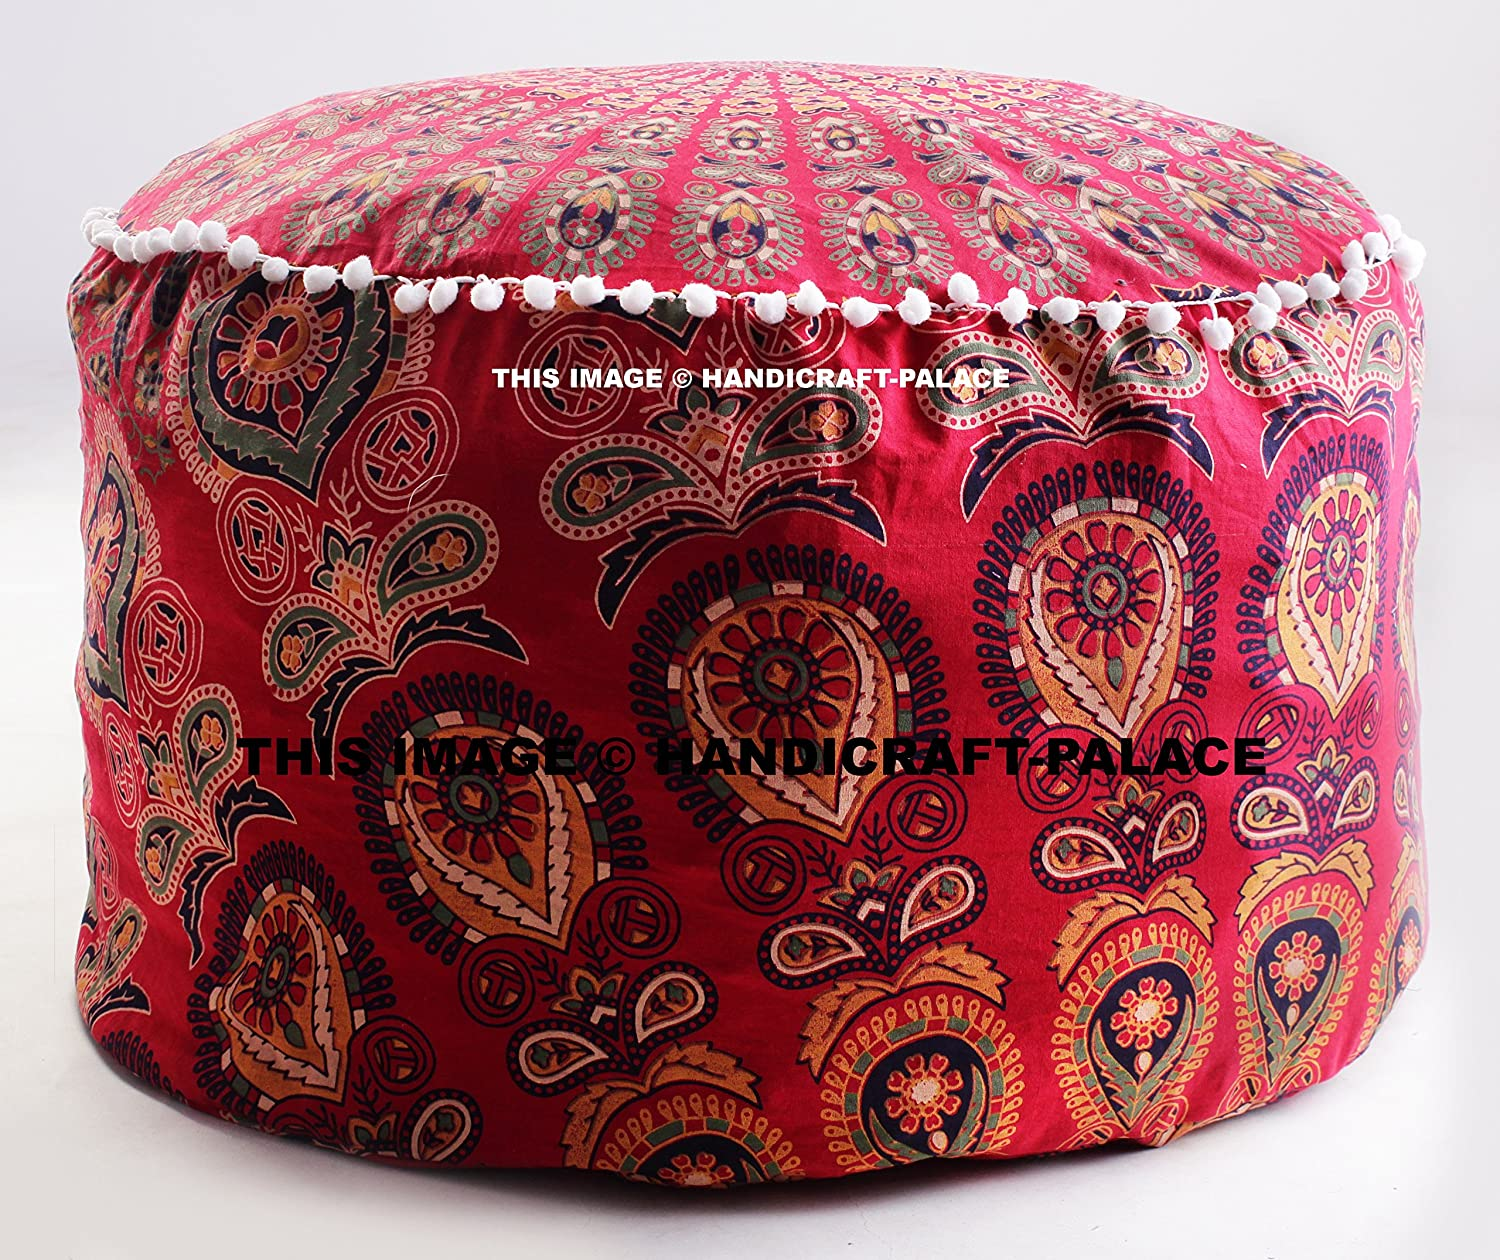 Floor Pillow Cover Large Seating Pouff Covers Bohemian Peacock Mandala Boho Indian Decor Ottoman Pouf Cover Seating Furniture Footstool Sold By Handicraft-Palace MOS-7